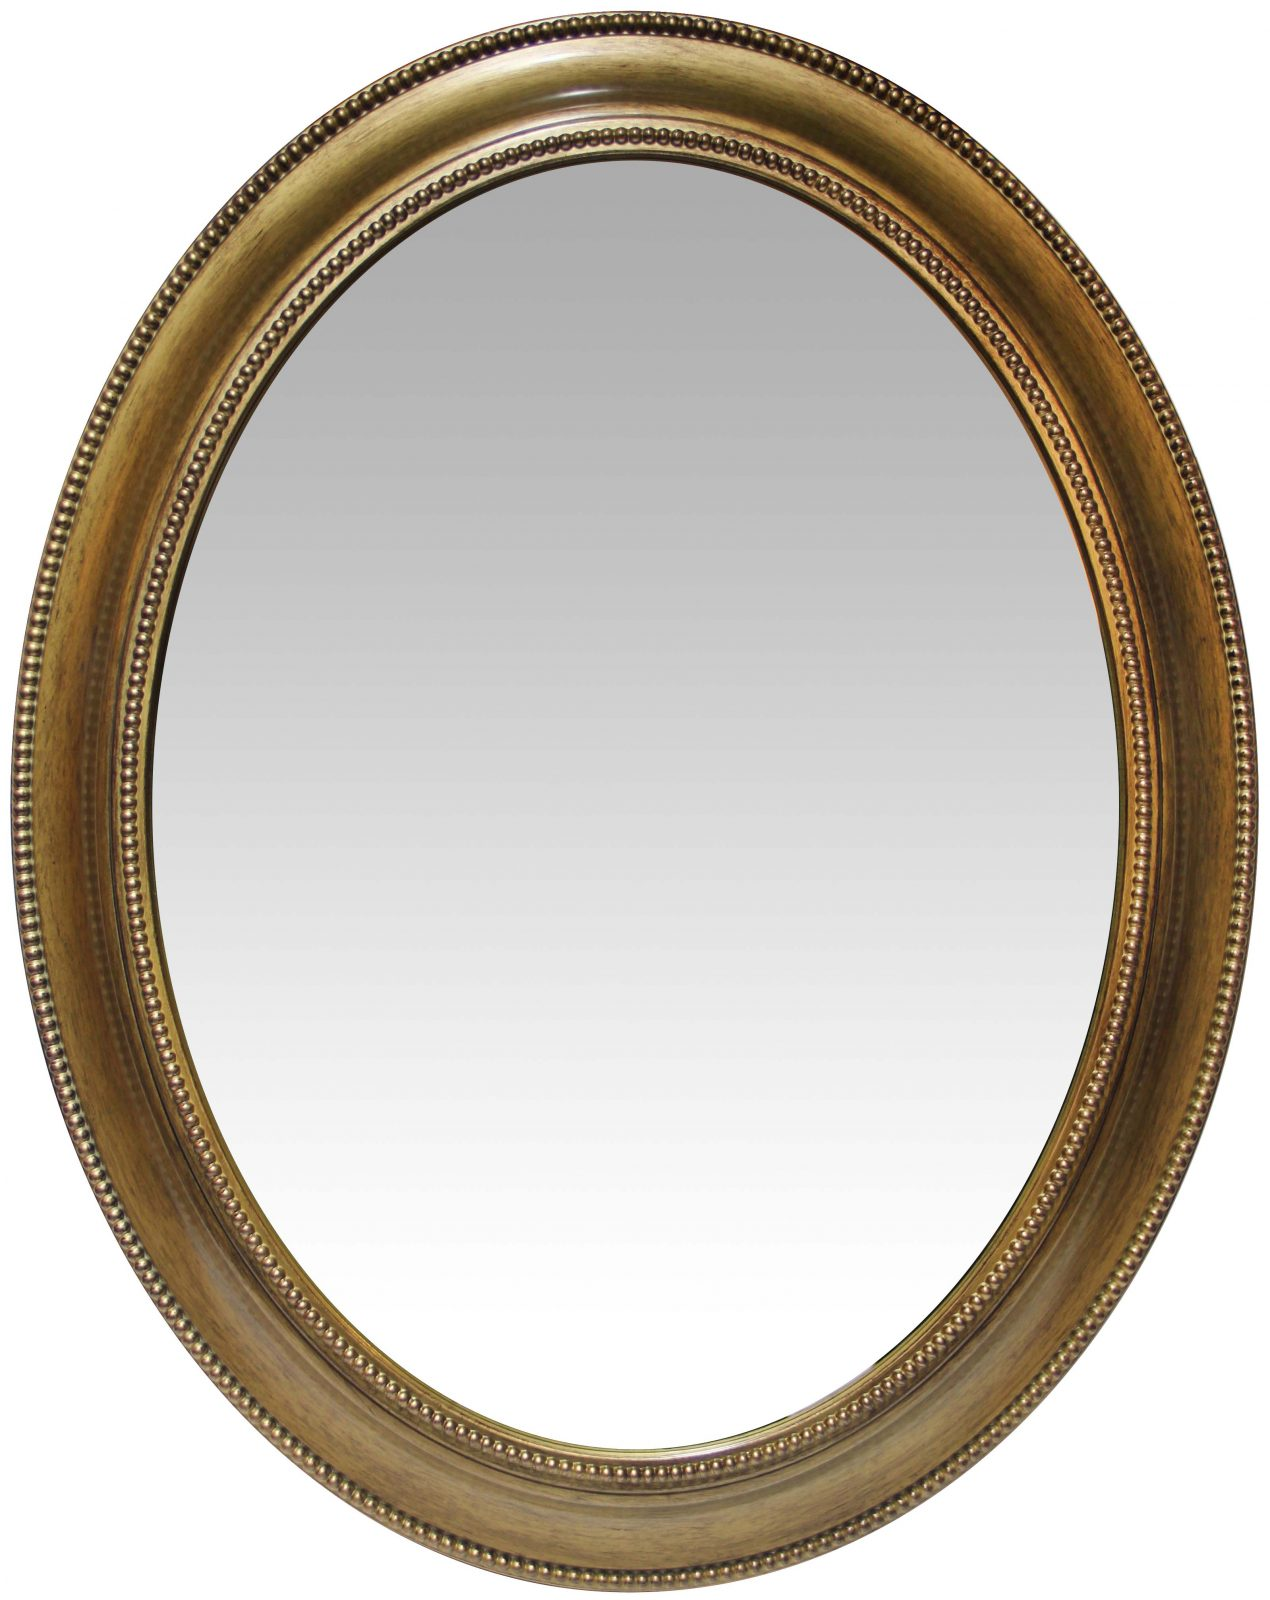 30 inch Sonore – Gold; an Antique Gold Wall Mirror